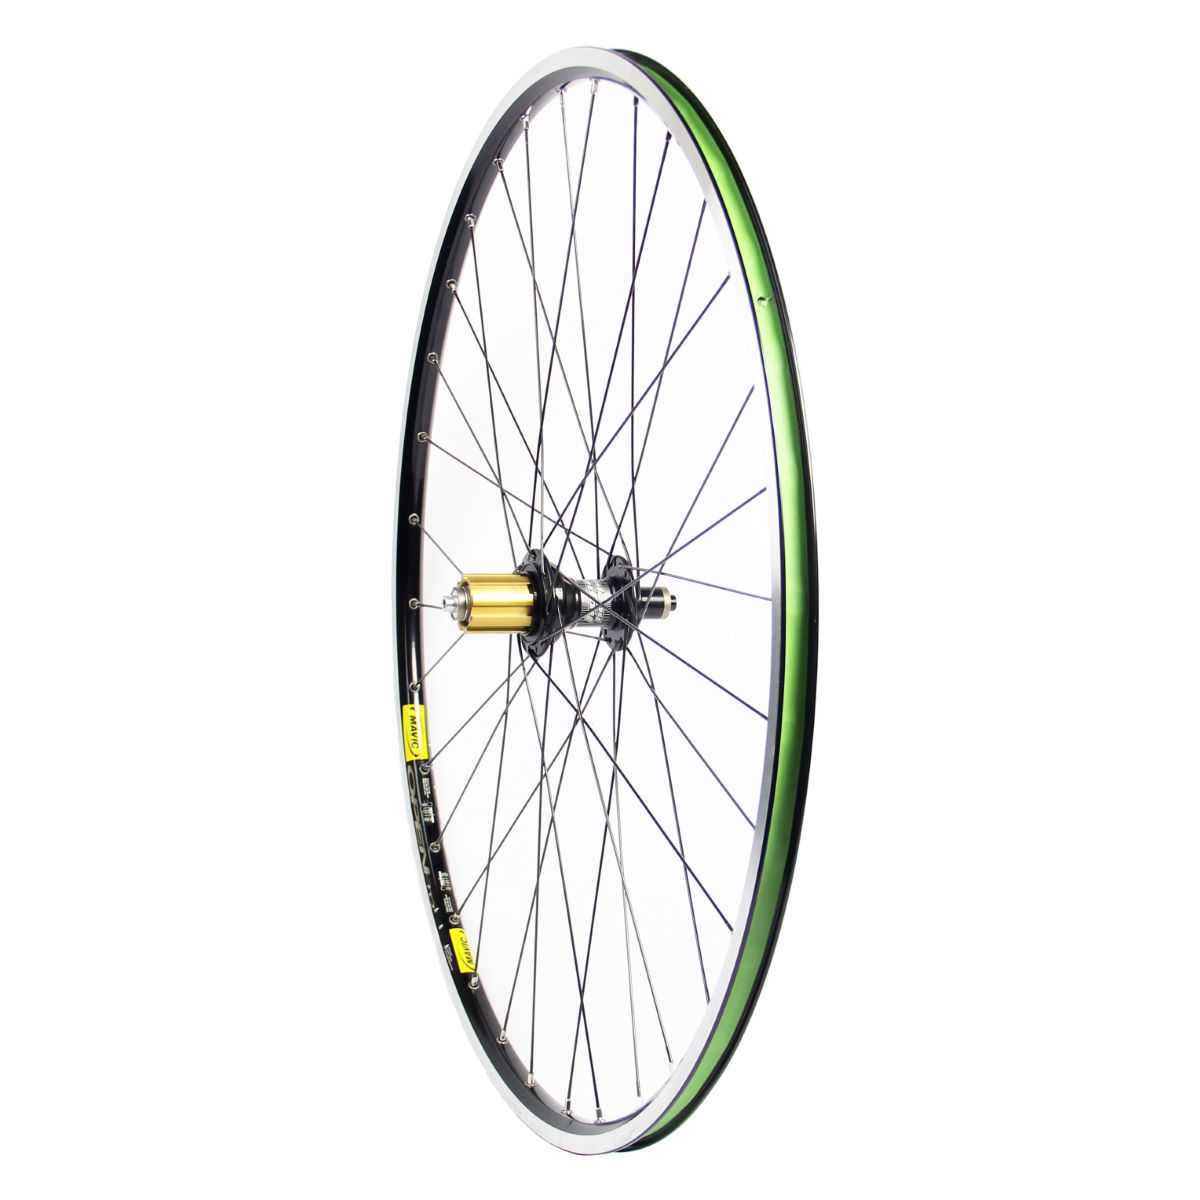 Roue arrière Hope Hoops Mono RS - Shimano/Sram 10/11Sp Black - Open Pro Roues performance